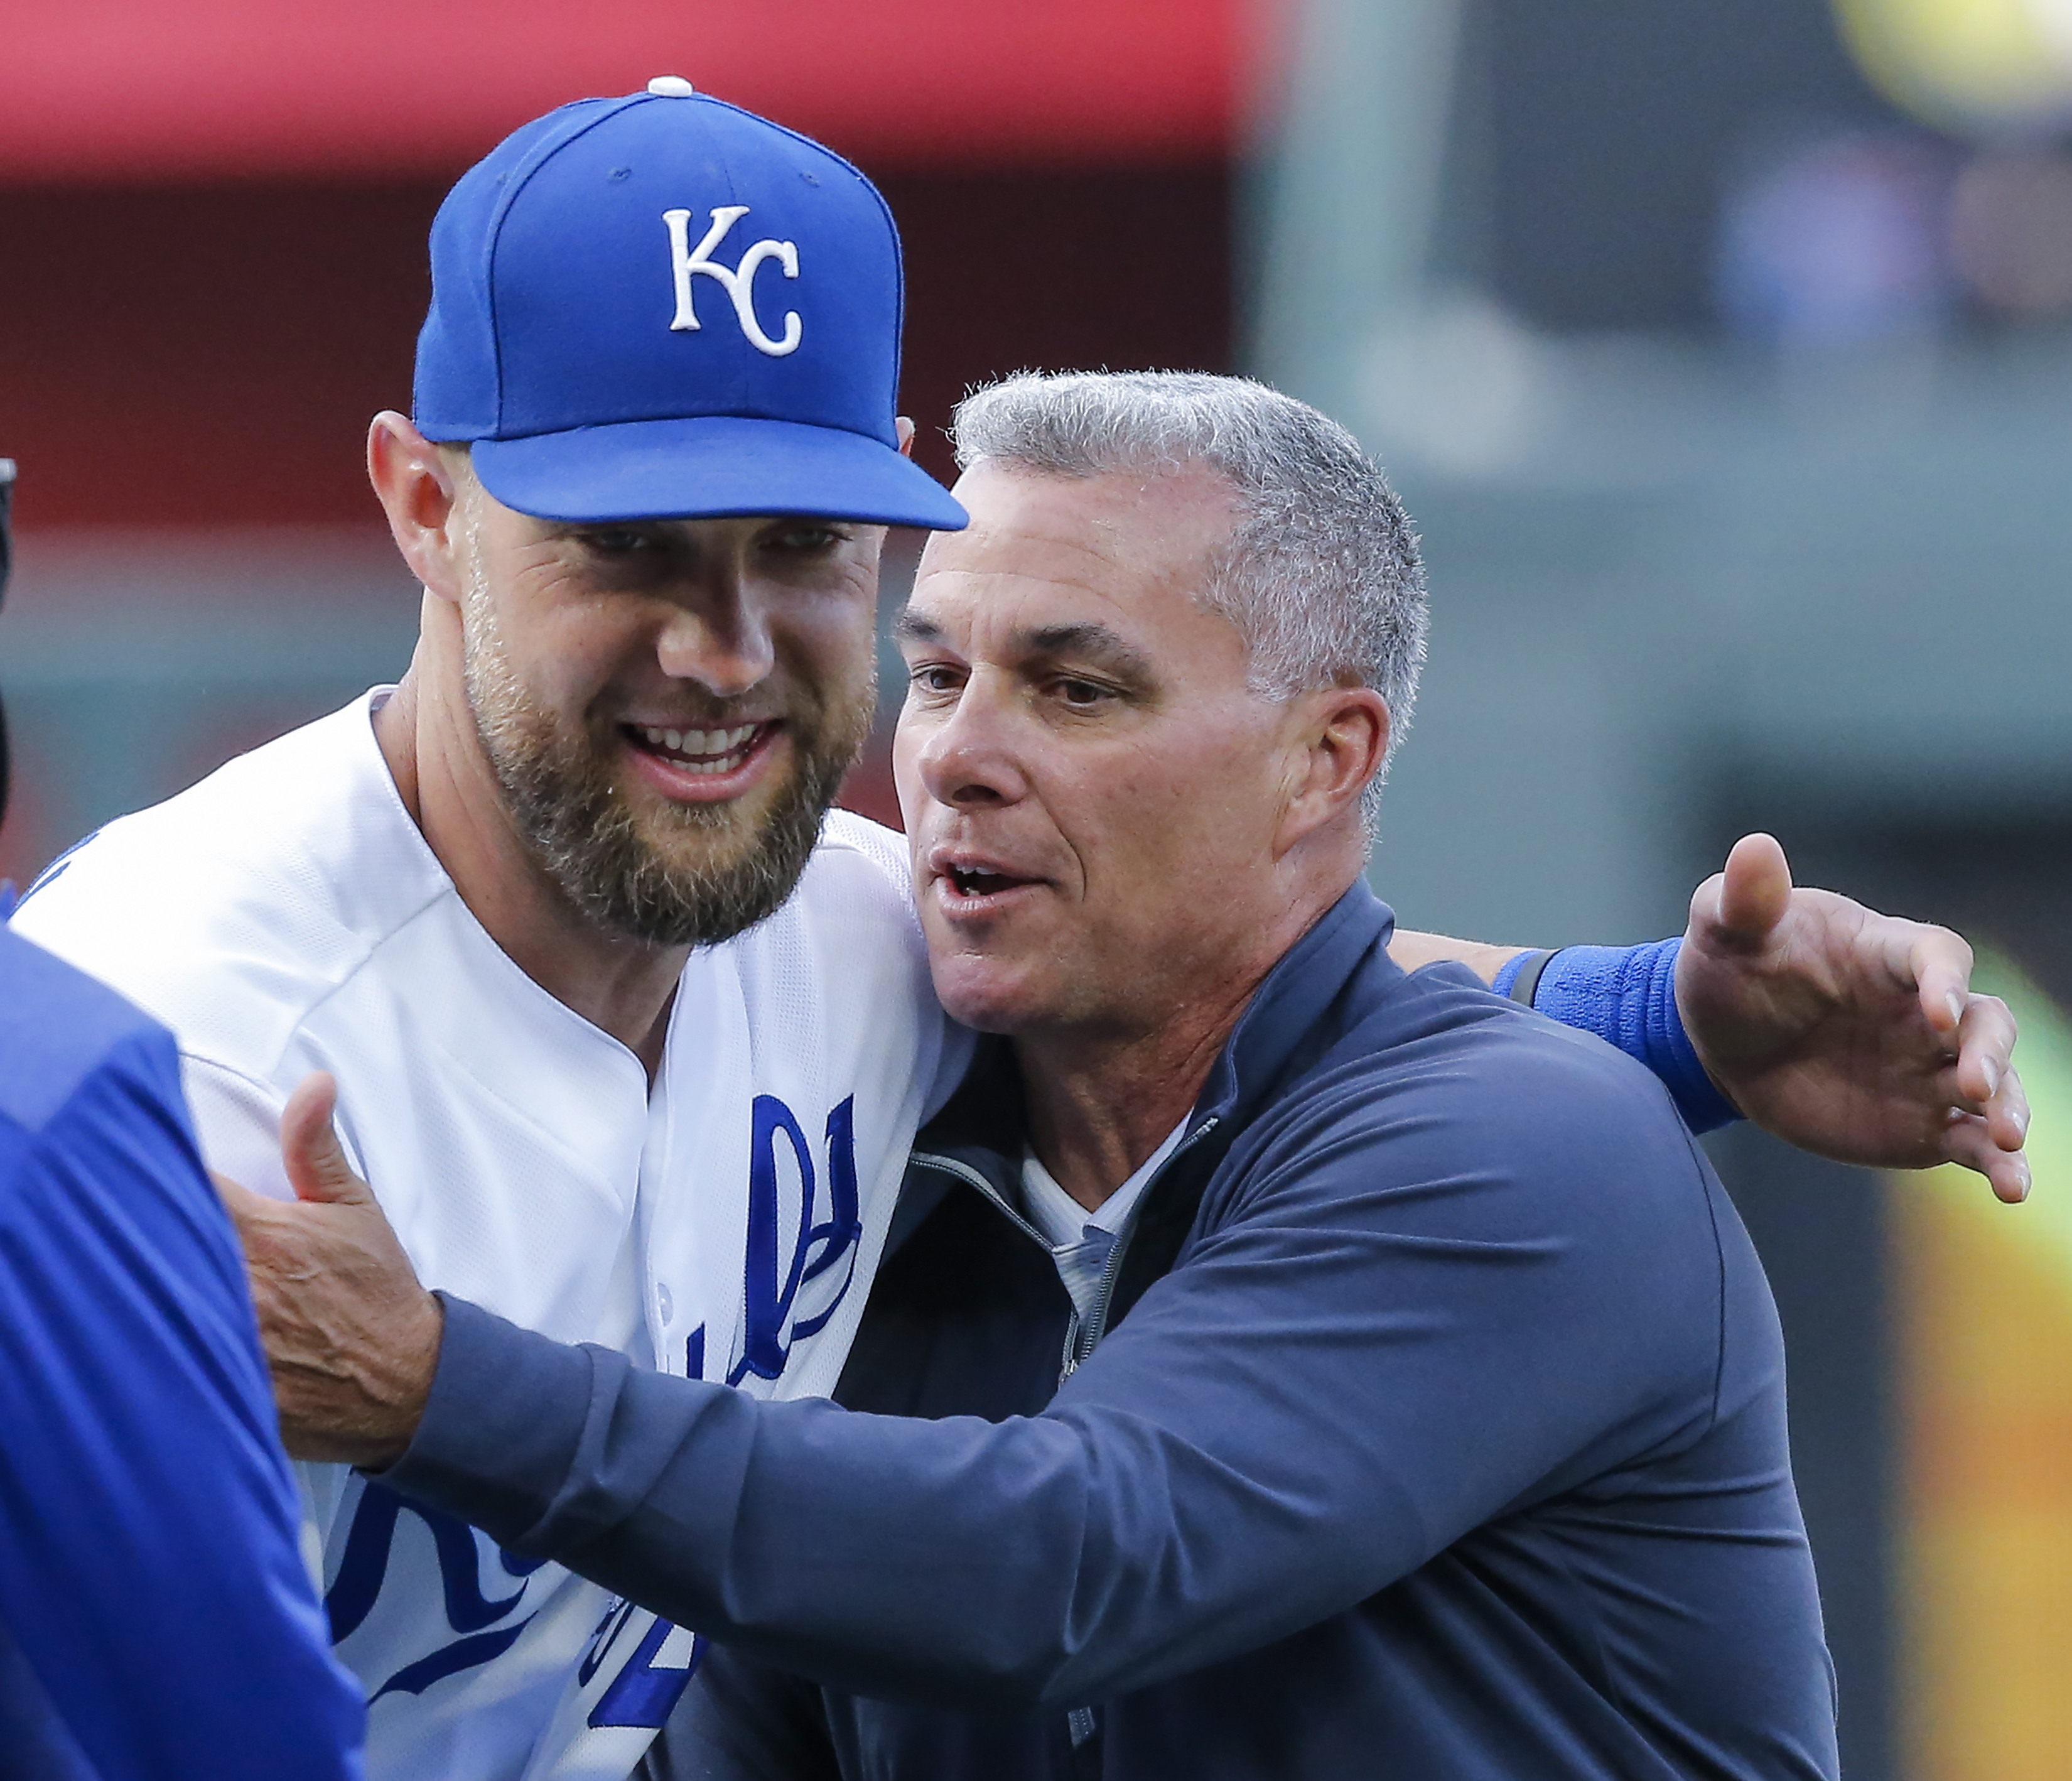 Dayton Moore shares a word with Alex Gordon before a game in 2019